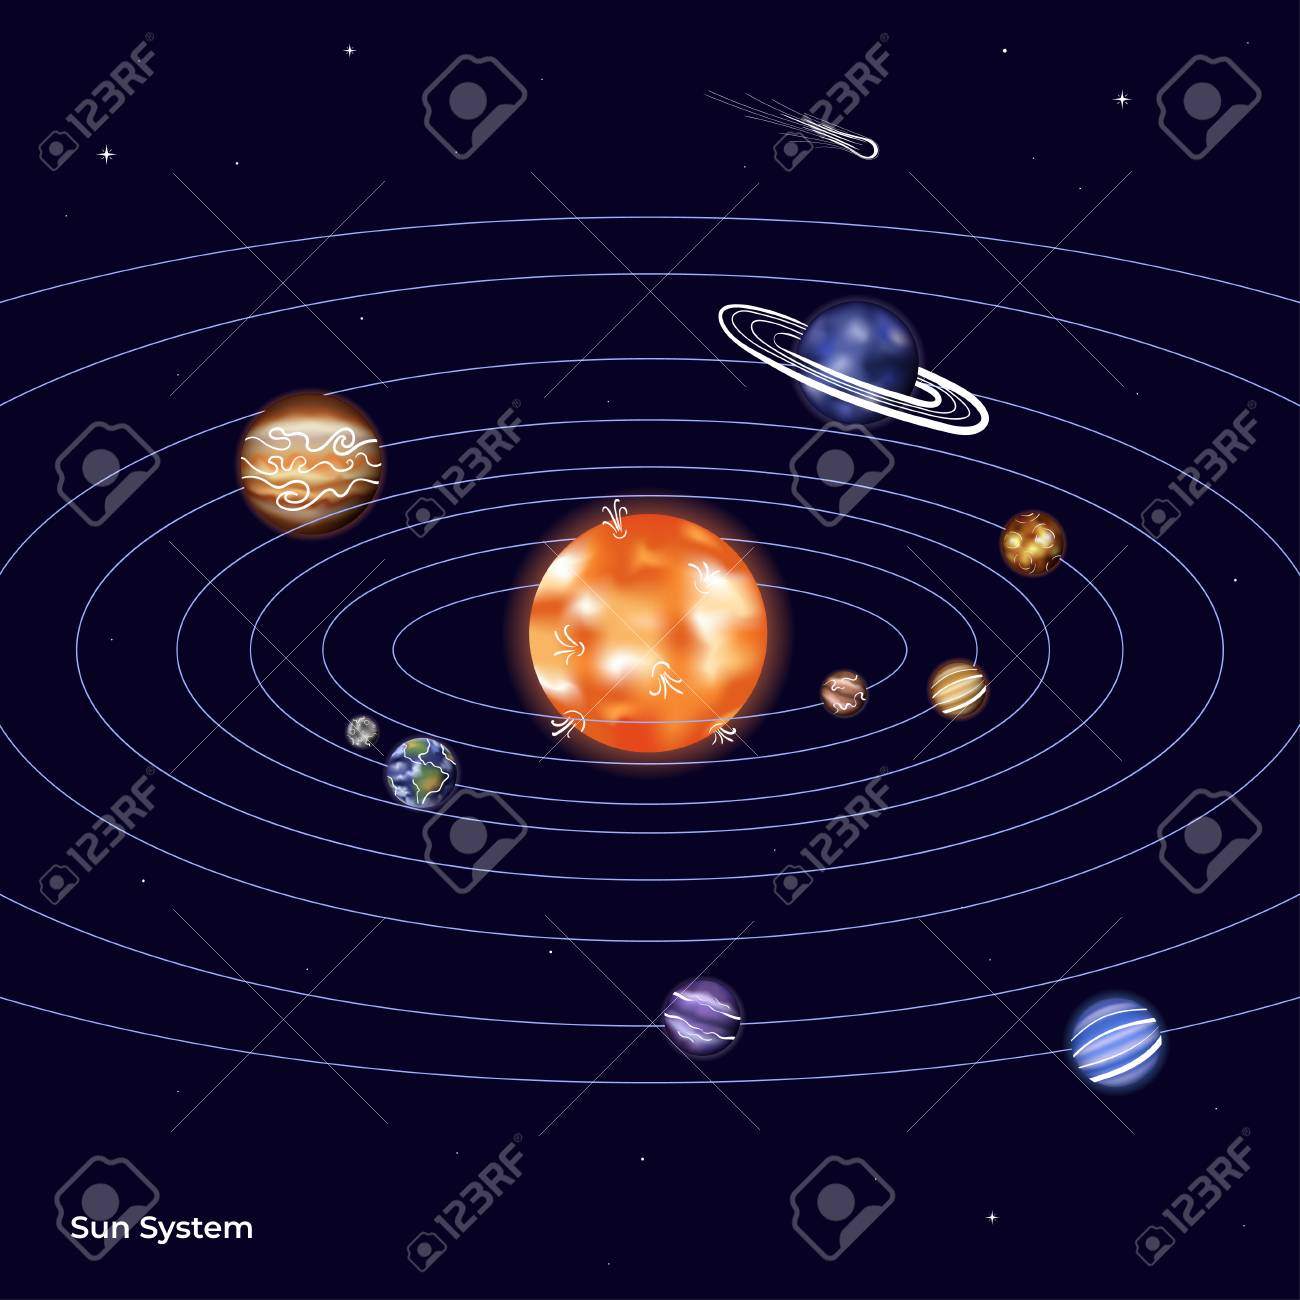 vector illustration of solar system with sun, mercury, venus, earth, moon,